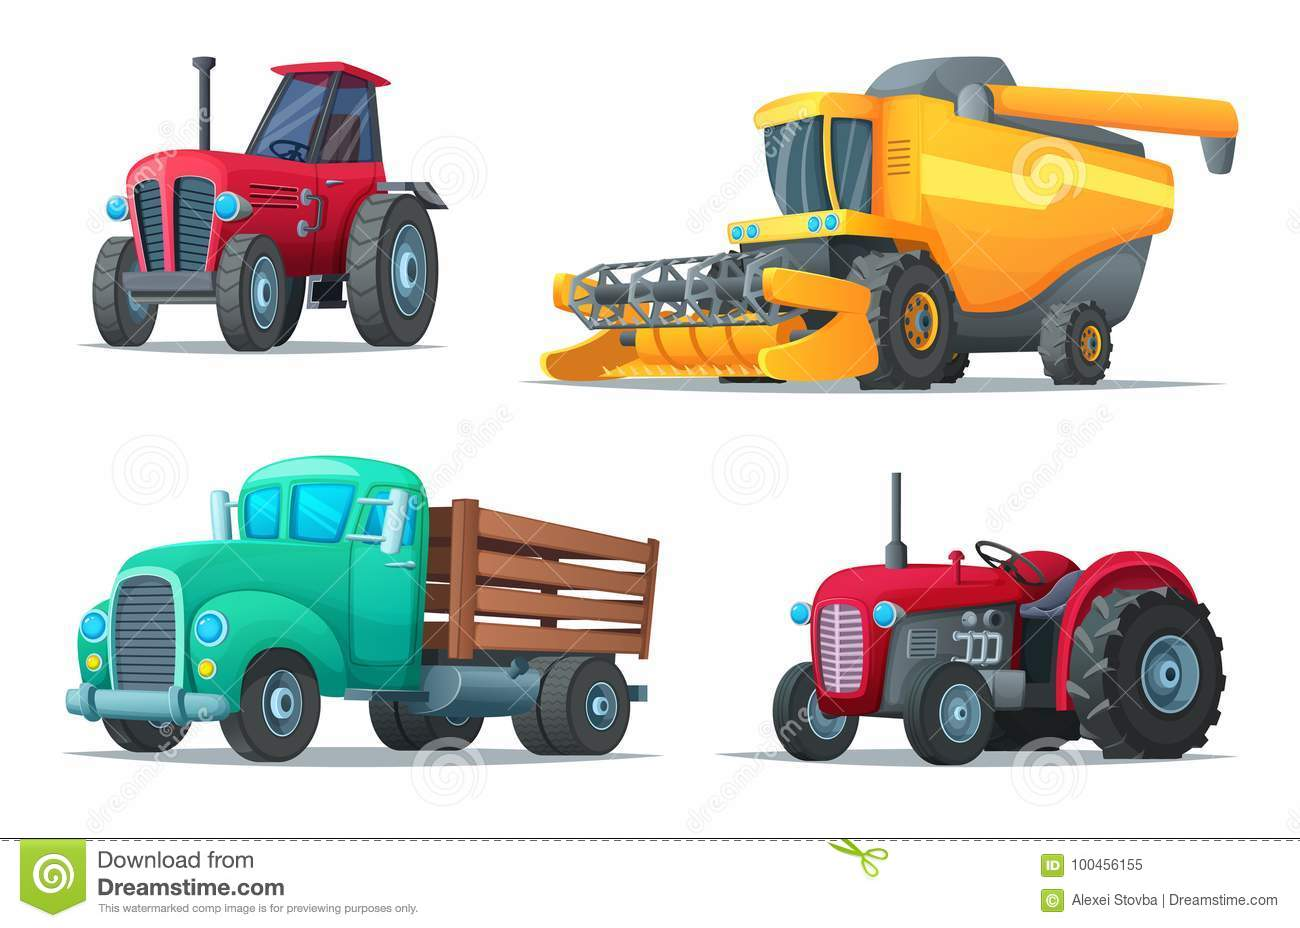 Agricultural Machinery Design : Set of agricultural transport farm equipment tractors